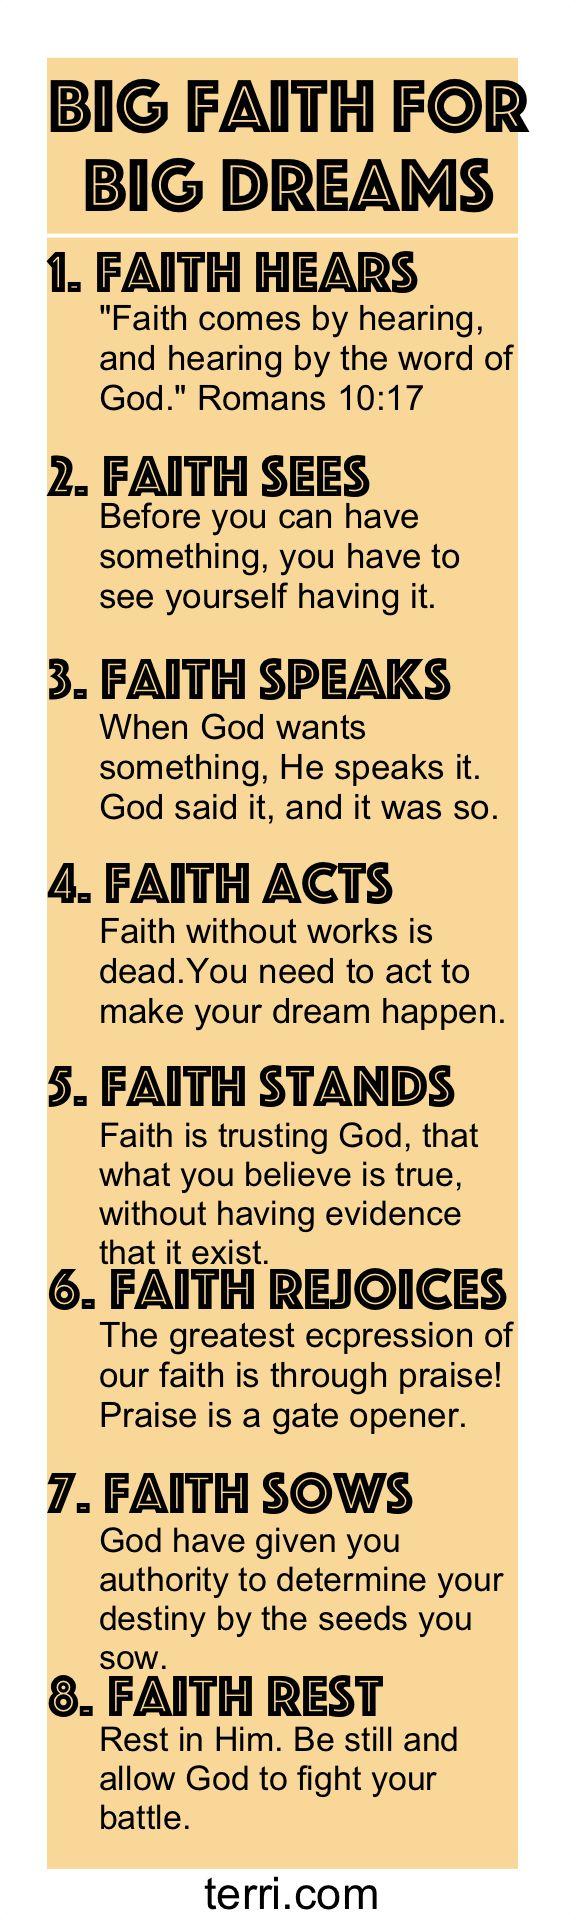 In oder to do BIG things, we have to have BIG faith! You have to learn to develop your faith and maintain it. The following are 8 characteristics of faith that work together in building your ability to trust God's working in your life!  For more motivational quotes and success tips visit terri.com